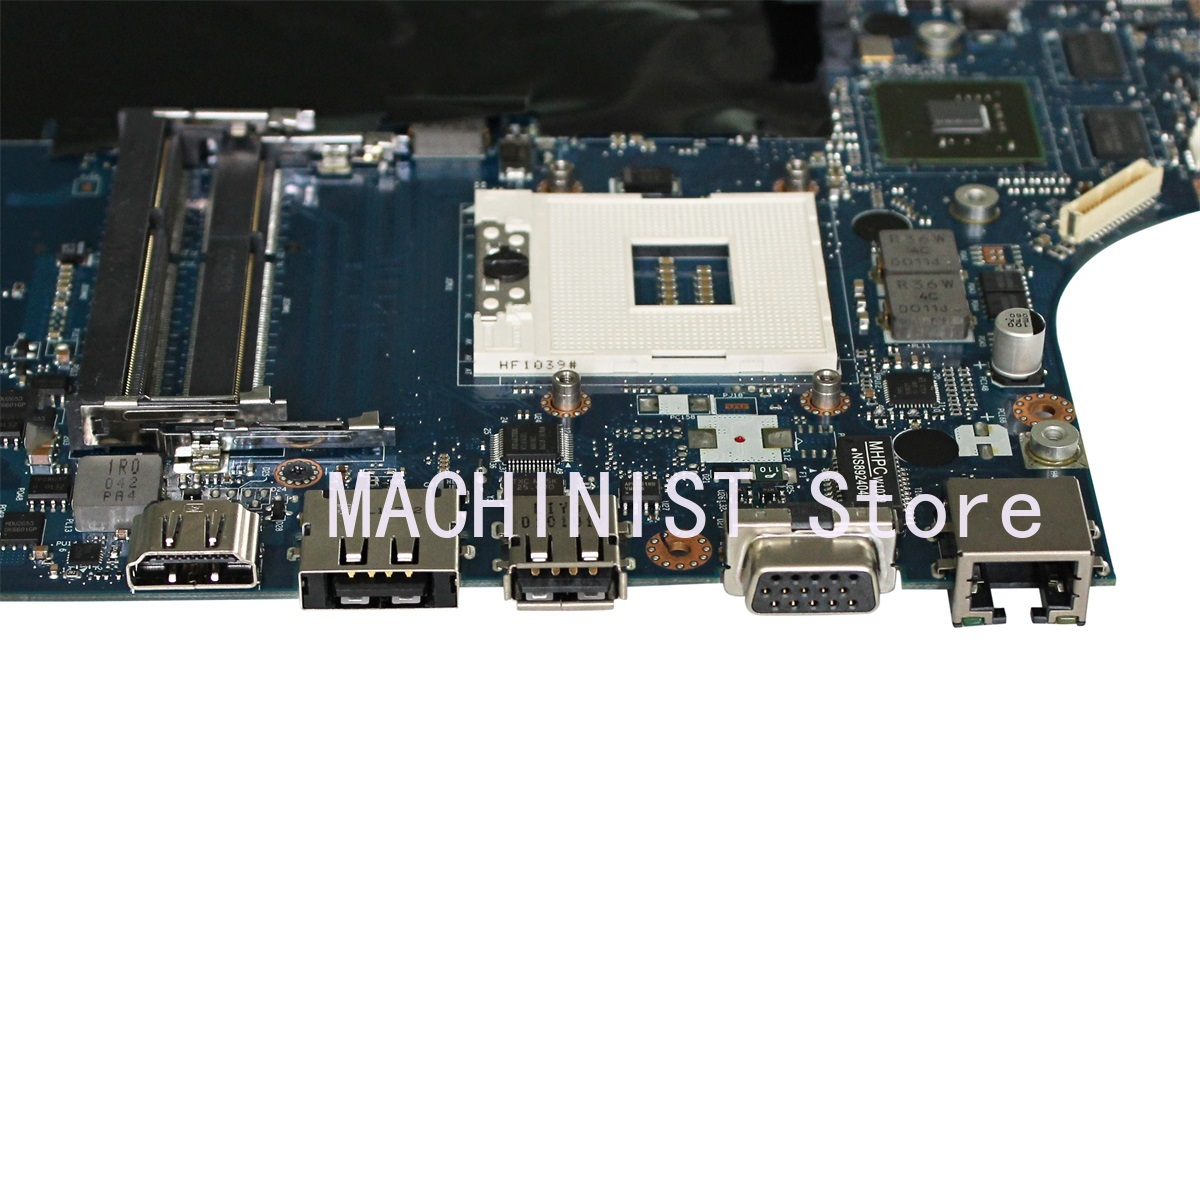 LA-5752P G560 Motherboard For Lenovo G560 Z560 Laptop Motherboard NIWE2 LA-5752P Rev:1.0  with GT310M Video Card DDR3 1